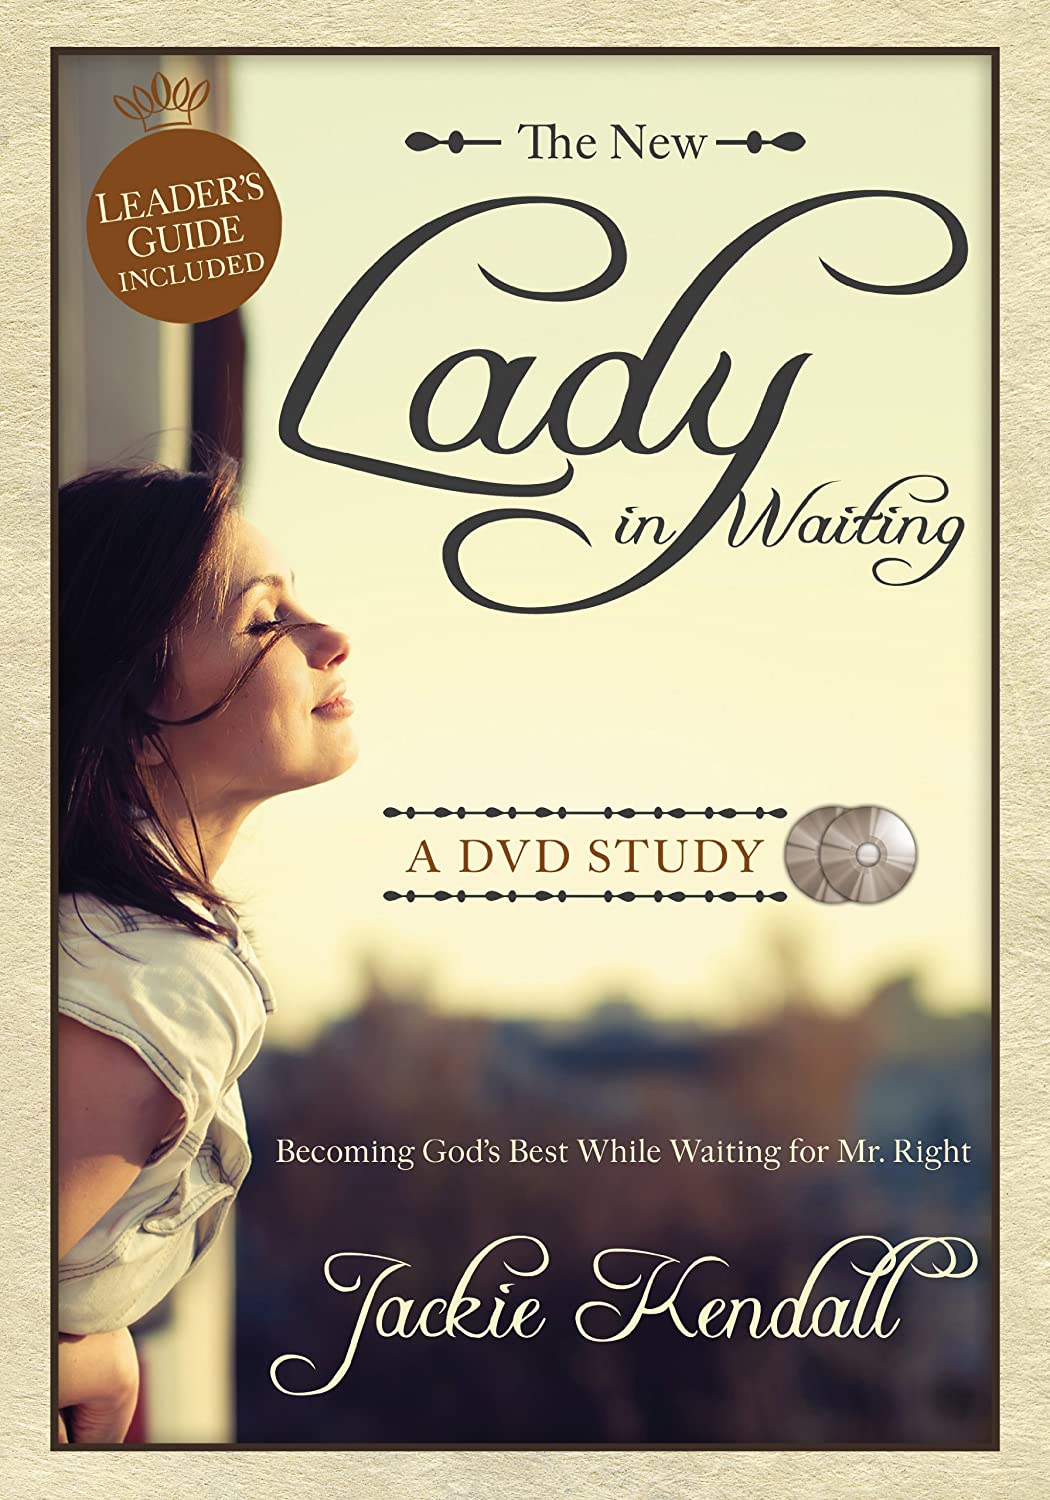 Amazon.com: The New Lady in Waiting: A DVD Study: Becoming God's Best While  Waiting for Mr. Right: Jackie Kendall, Destiny Image: Movies & TV